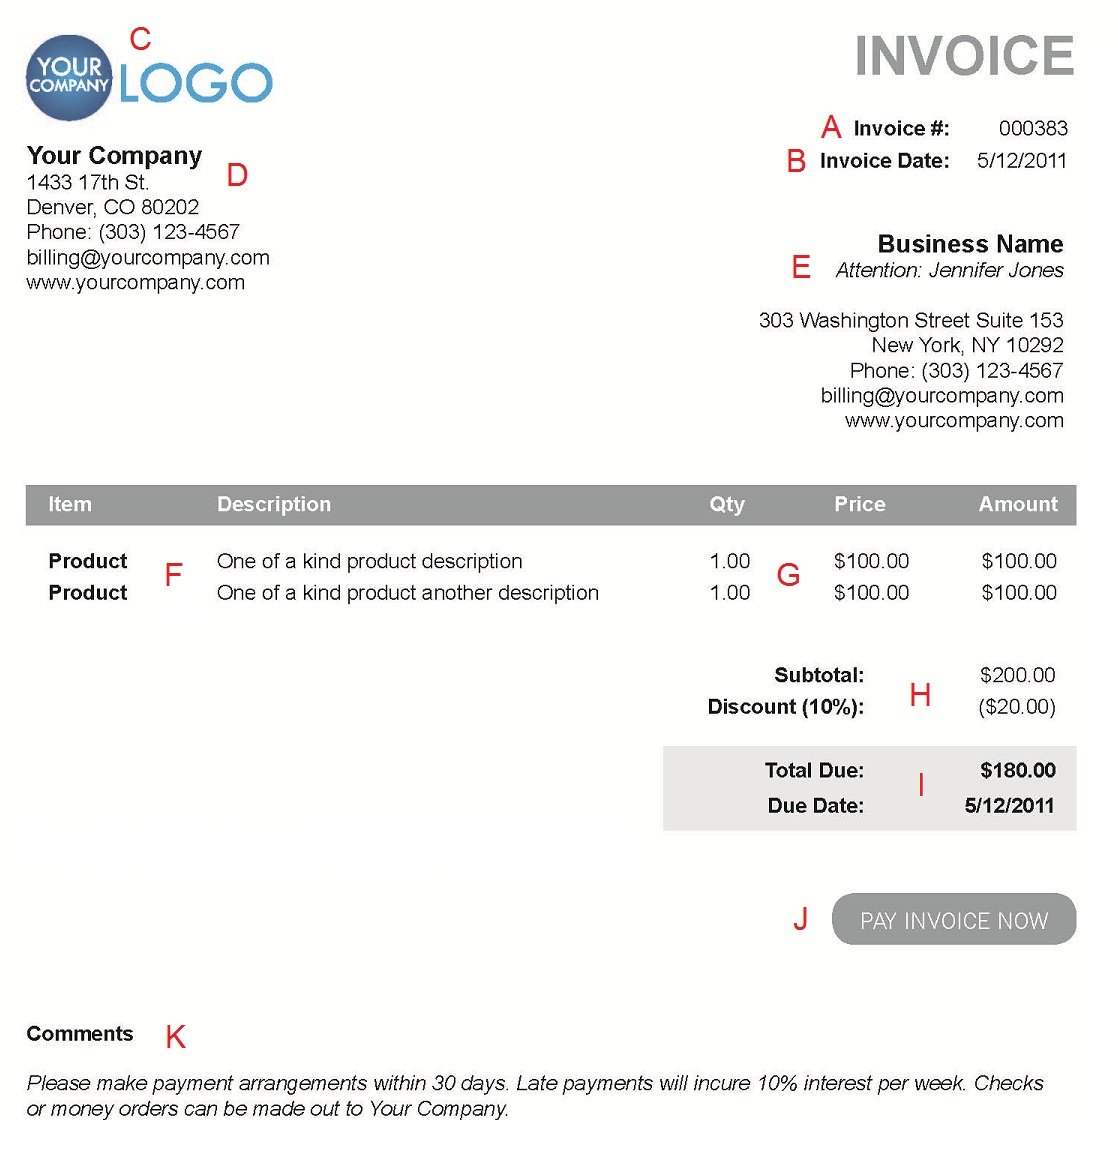 Patriotexpressus  Winning The  Different Sections Of An Electronic Payment Invoice With Fascinating A  With Adorable Invoice In Paypal Also Detailed Invoice Template In Addition Us Customs Invoice Requirements And Sample Invoice Word Doc As Well As How To Make A Professional Invoice Additionally Honda Invoice From Paysimplecom With Patriotexpressus  Fascinating The  Different Sections Of An Electronic Payment Invoice With Adorable A  And Winning Invoice In Paypal Also Detailed Invoice Template In Addition Us Customs Invoice Requirements From Paysimplecom